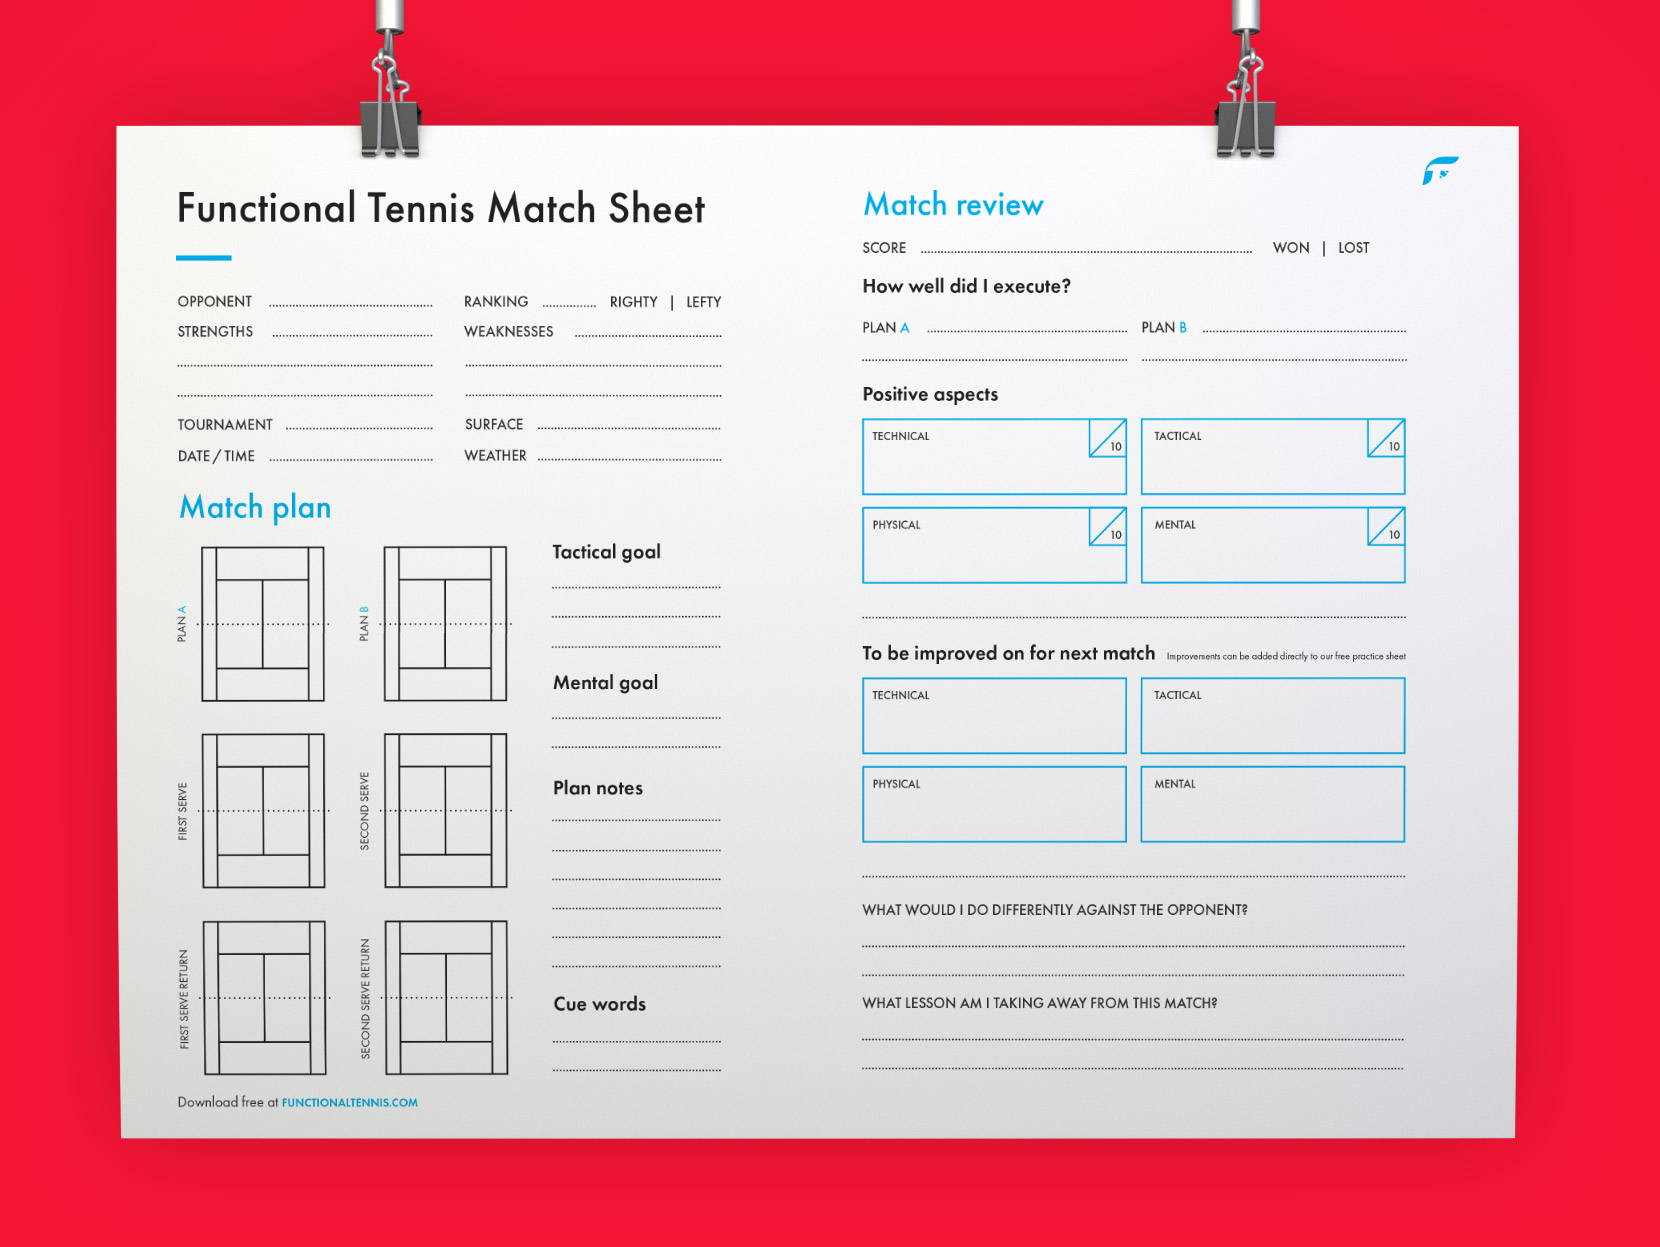 The updated Functional tennis match sheet